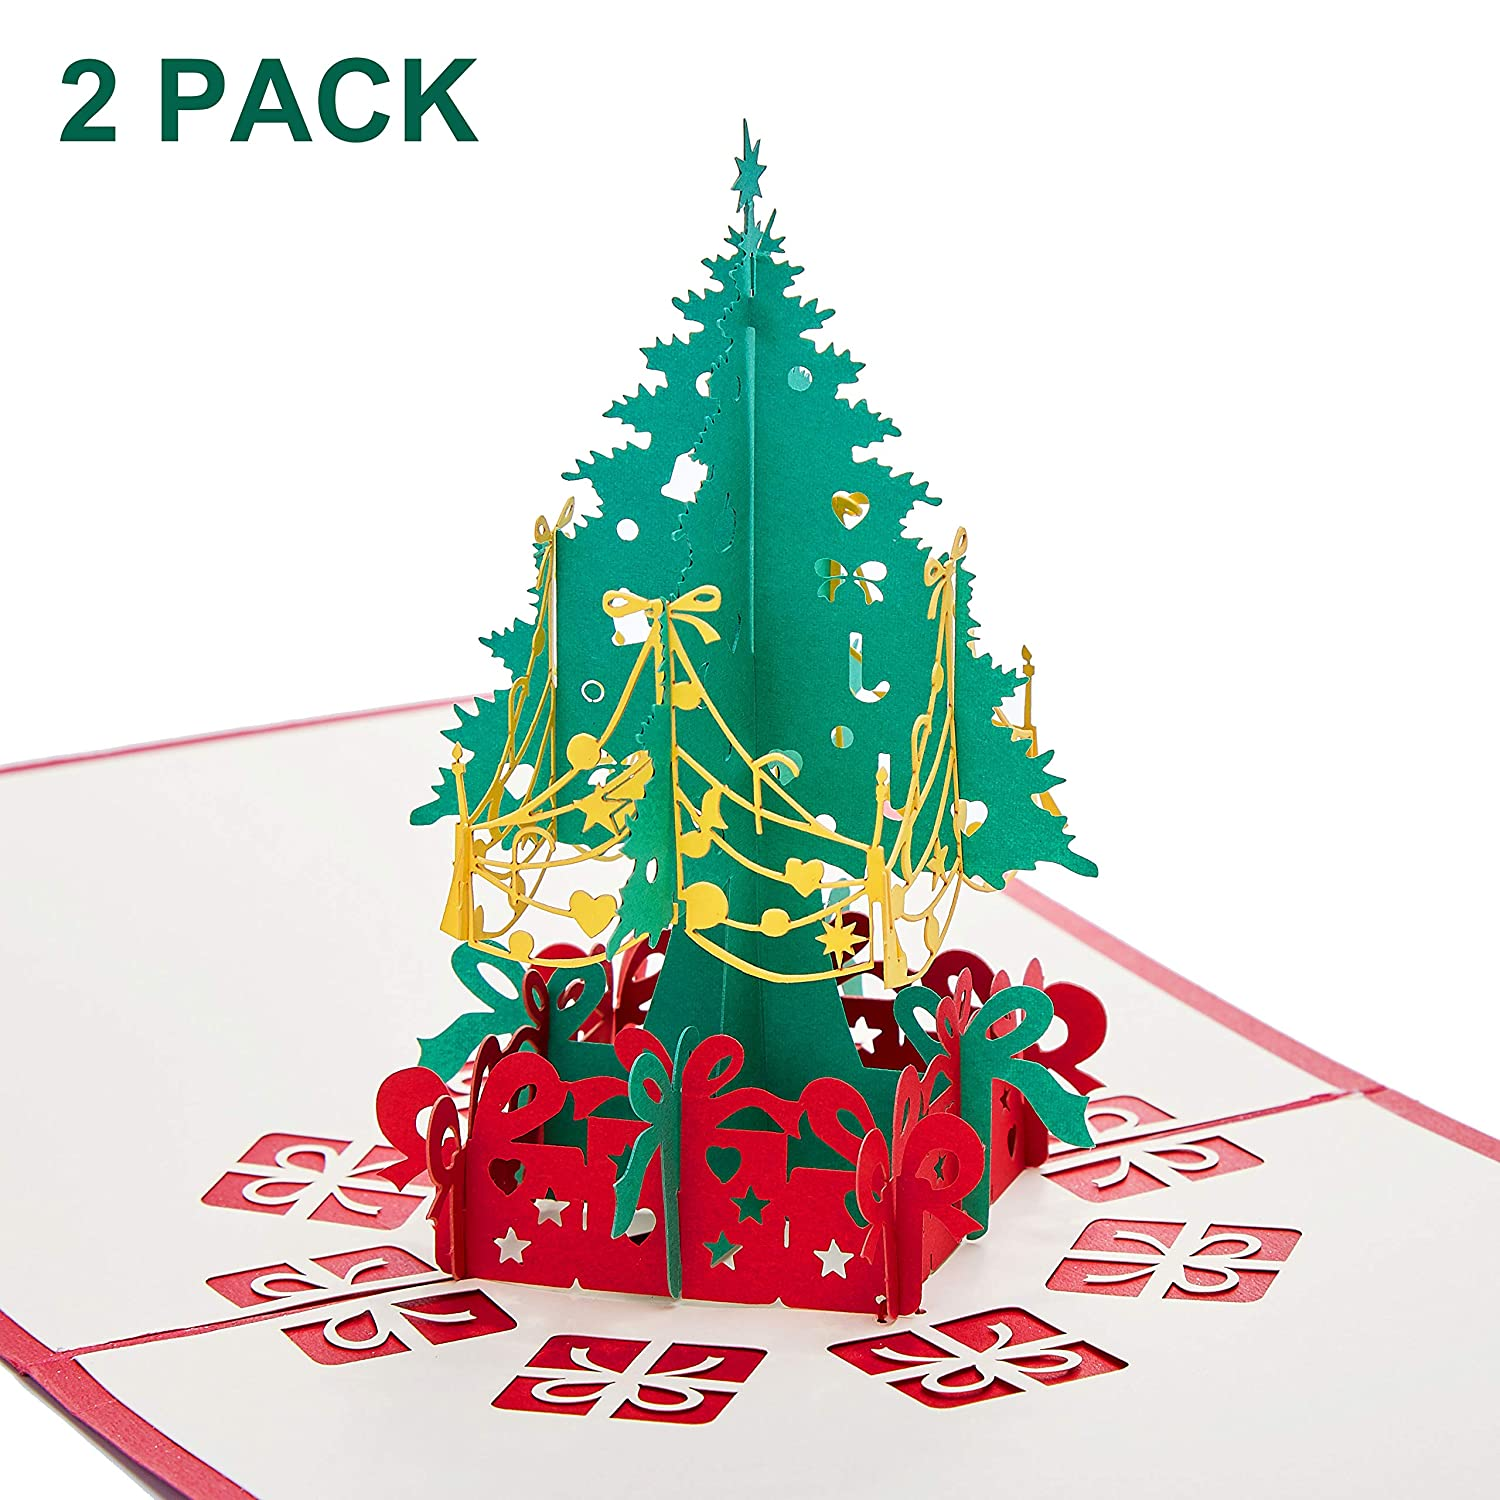 Macting 3d Pop Up Christmas Cards Xmas Tree With Envelope Gift For